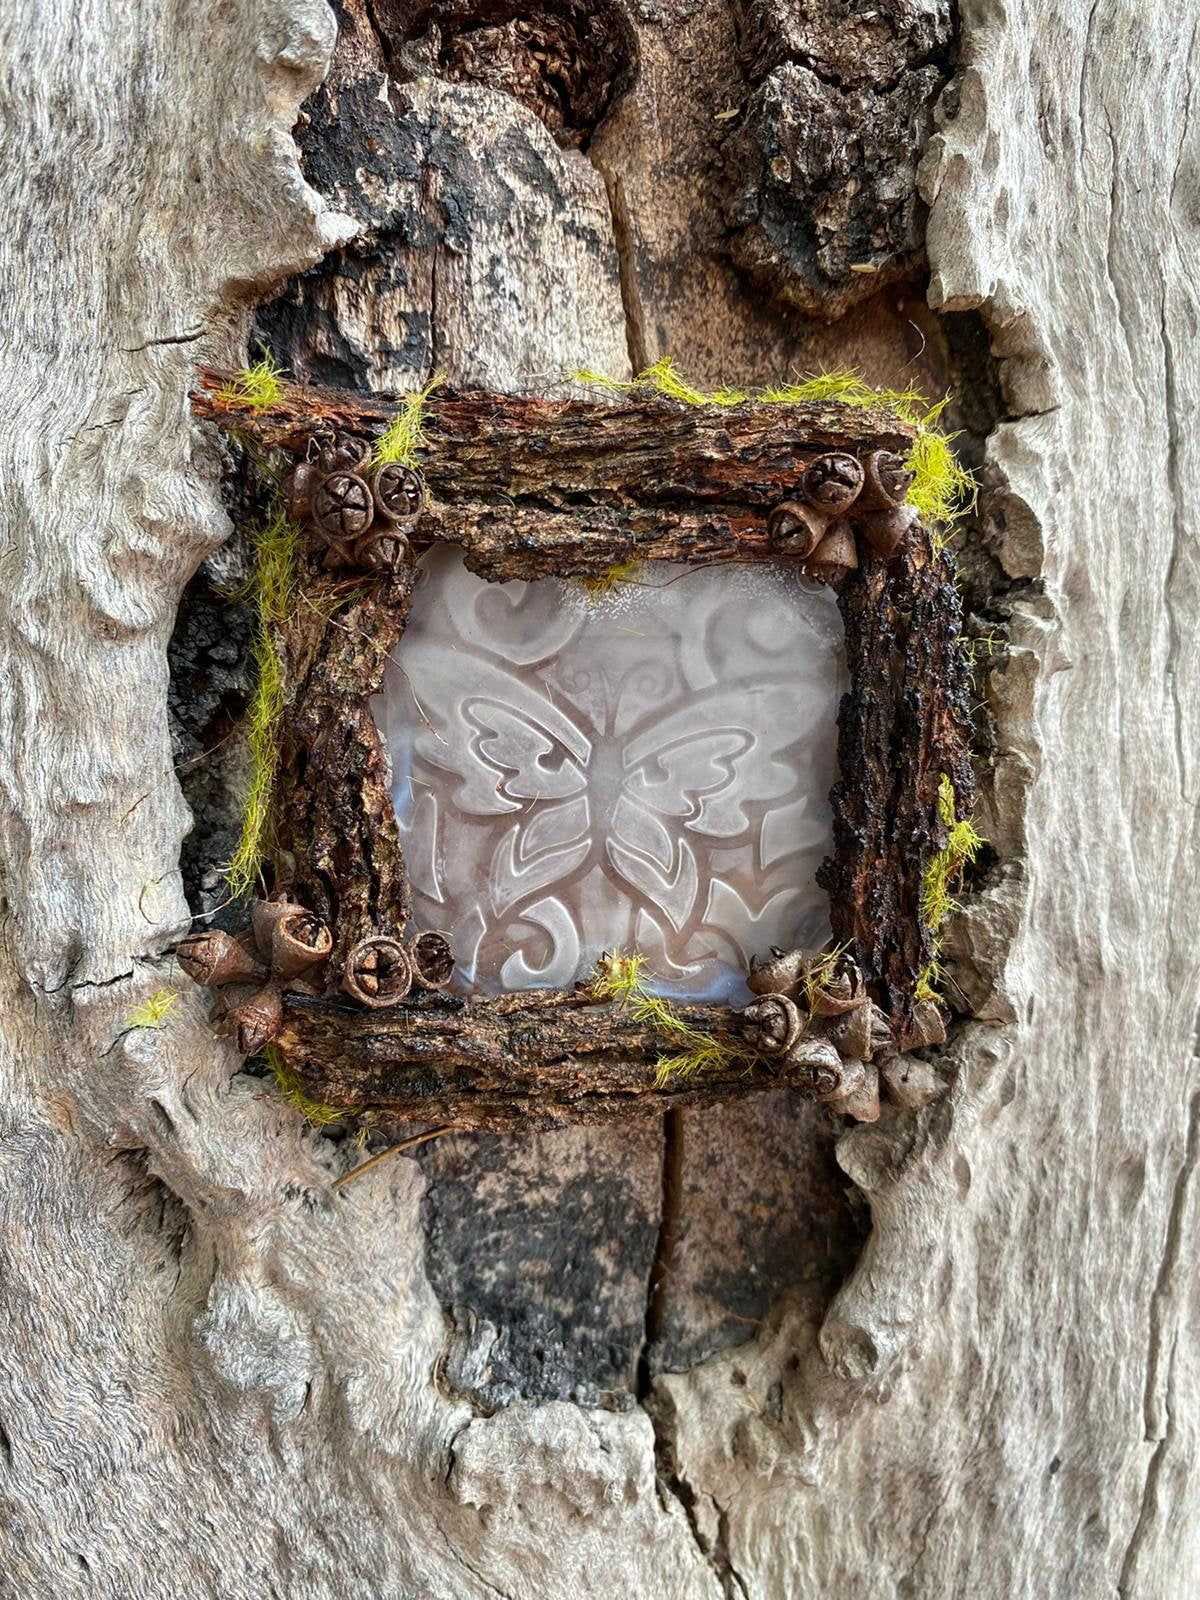 Fairy House Window - Fairy garden, Miniature, Fairy furniture, Indoor garden, Dollhouse furniture,Twig furniture, Fairy House